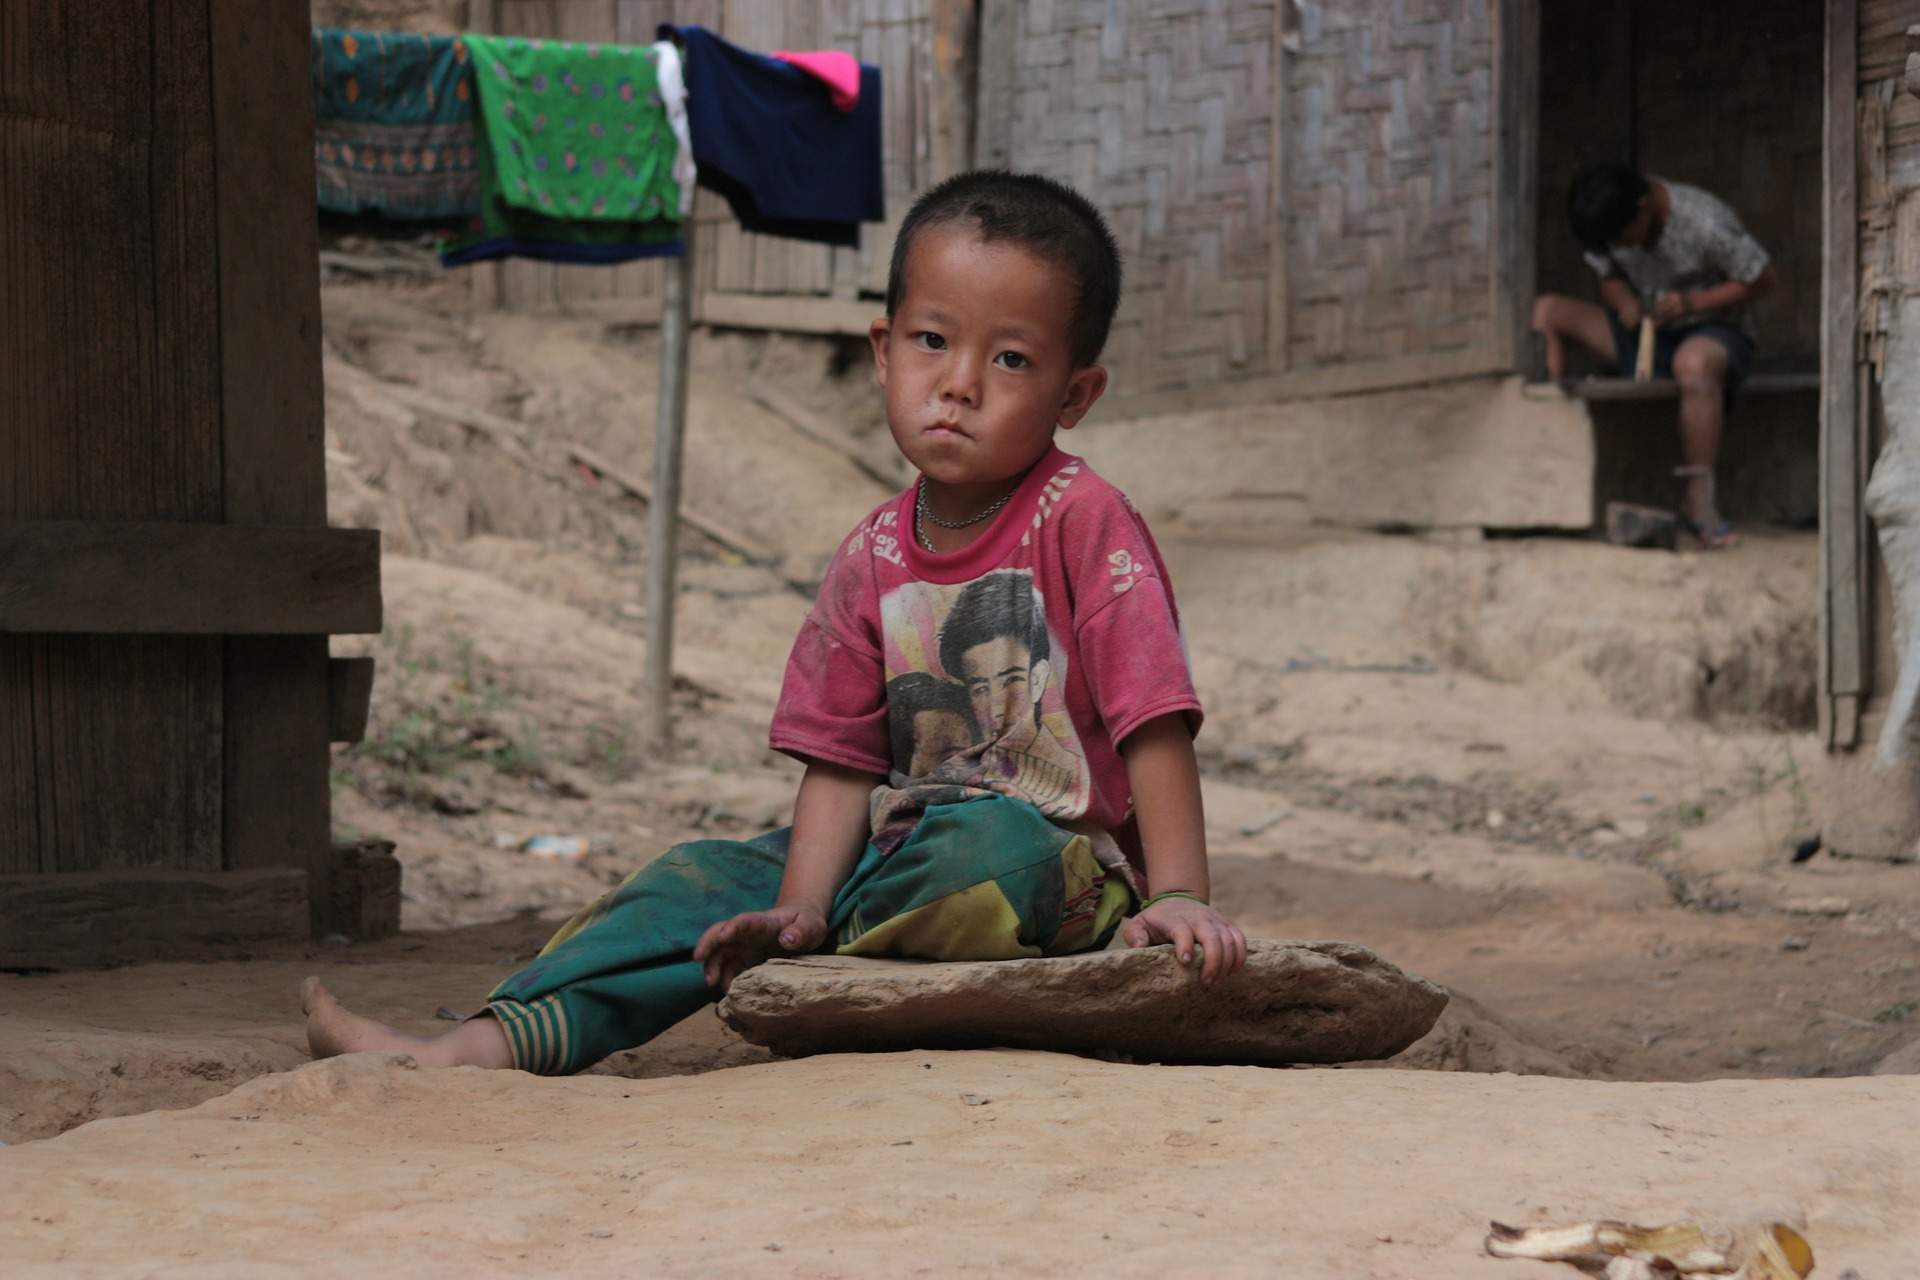 Young boy in poverty in developing region.